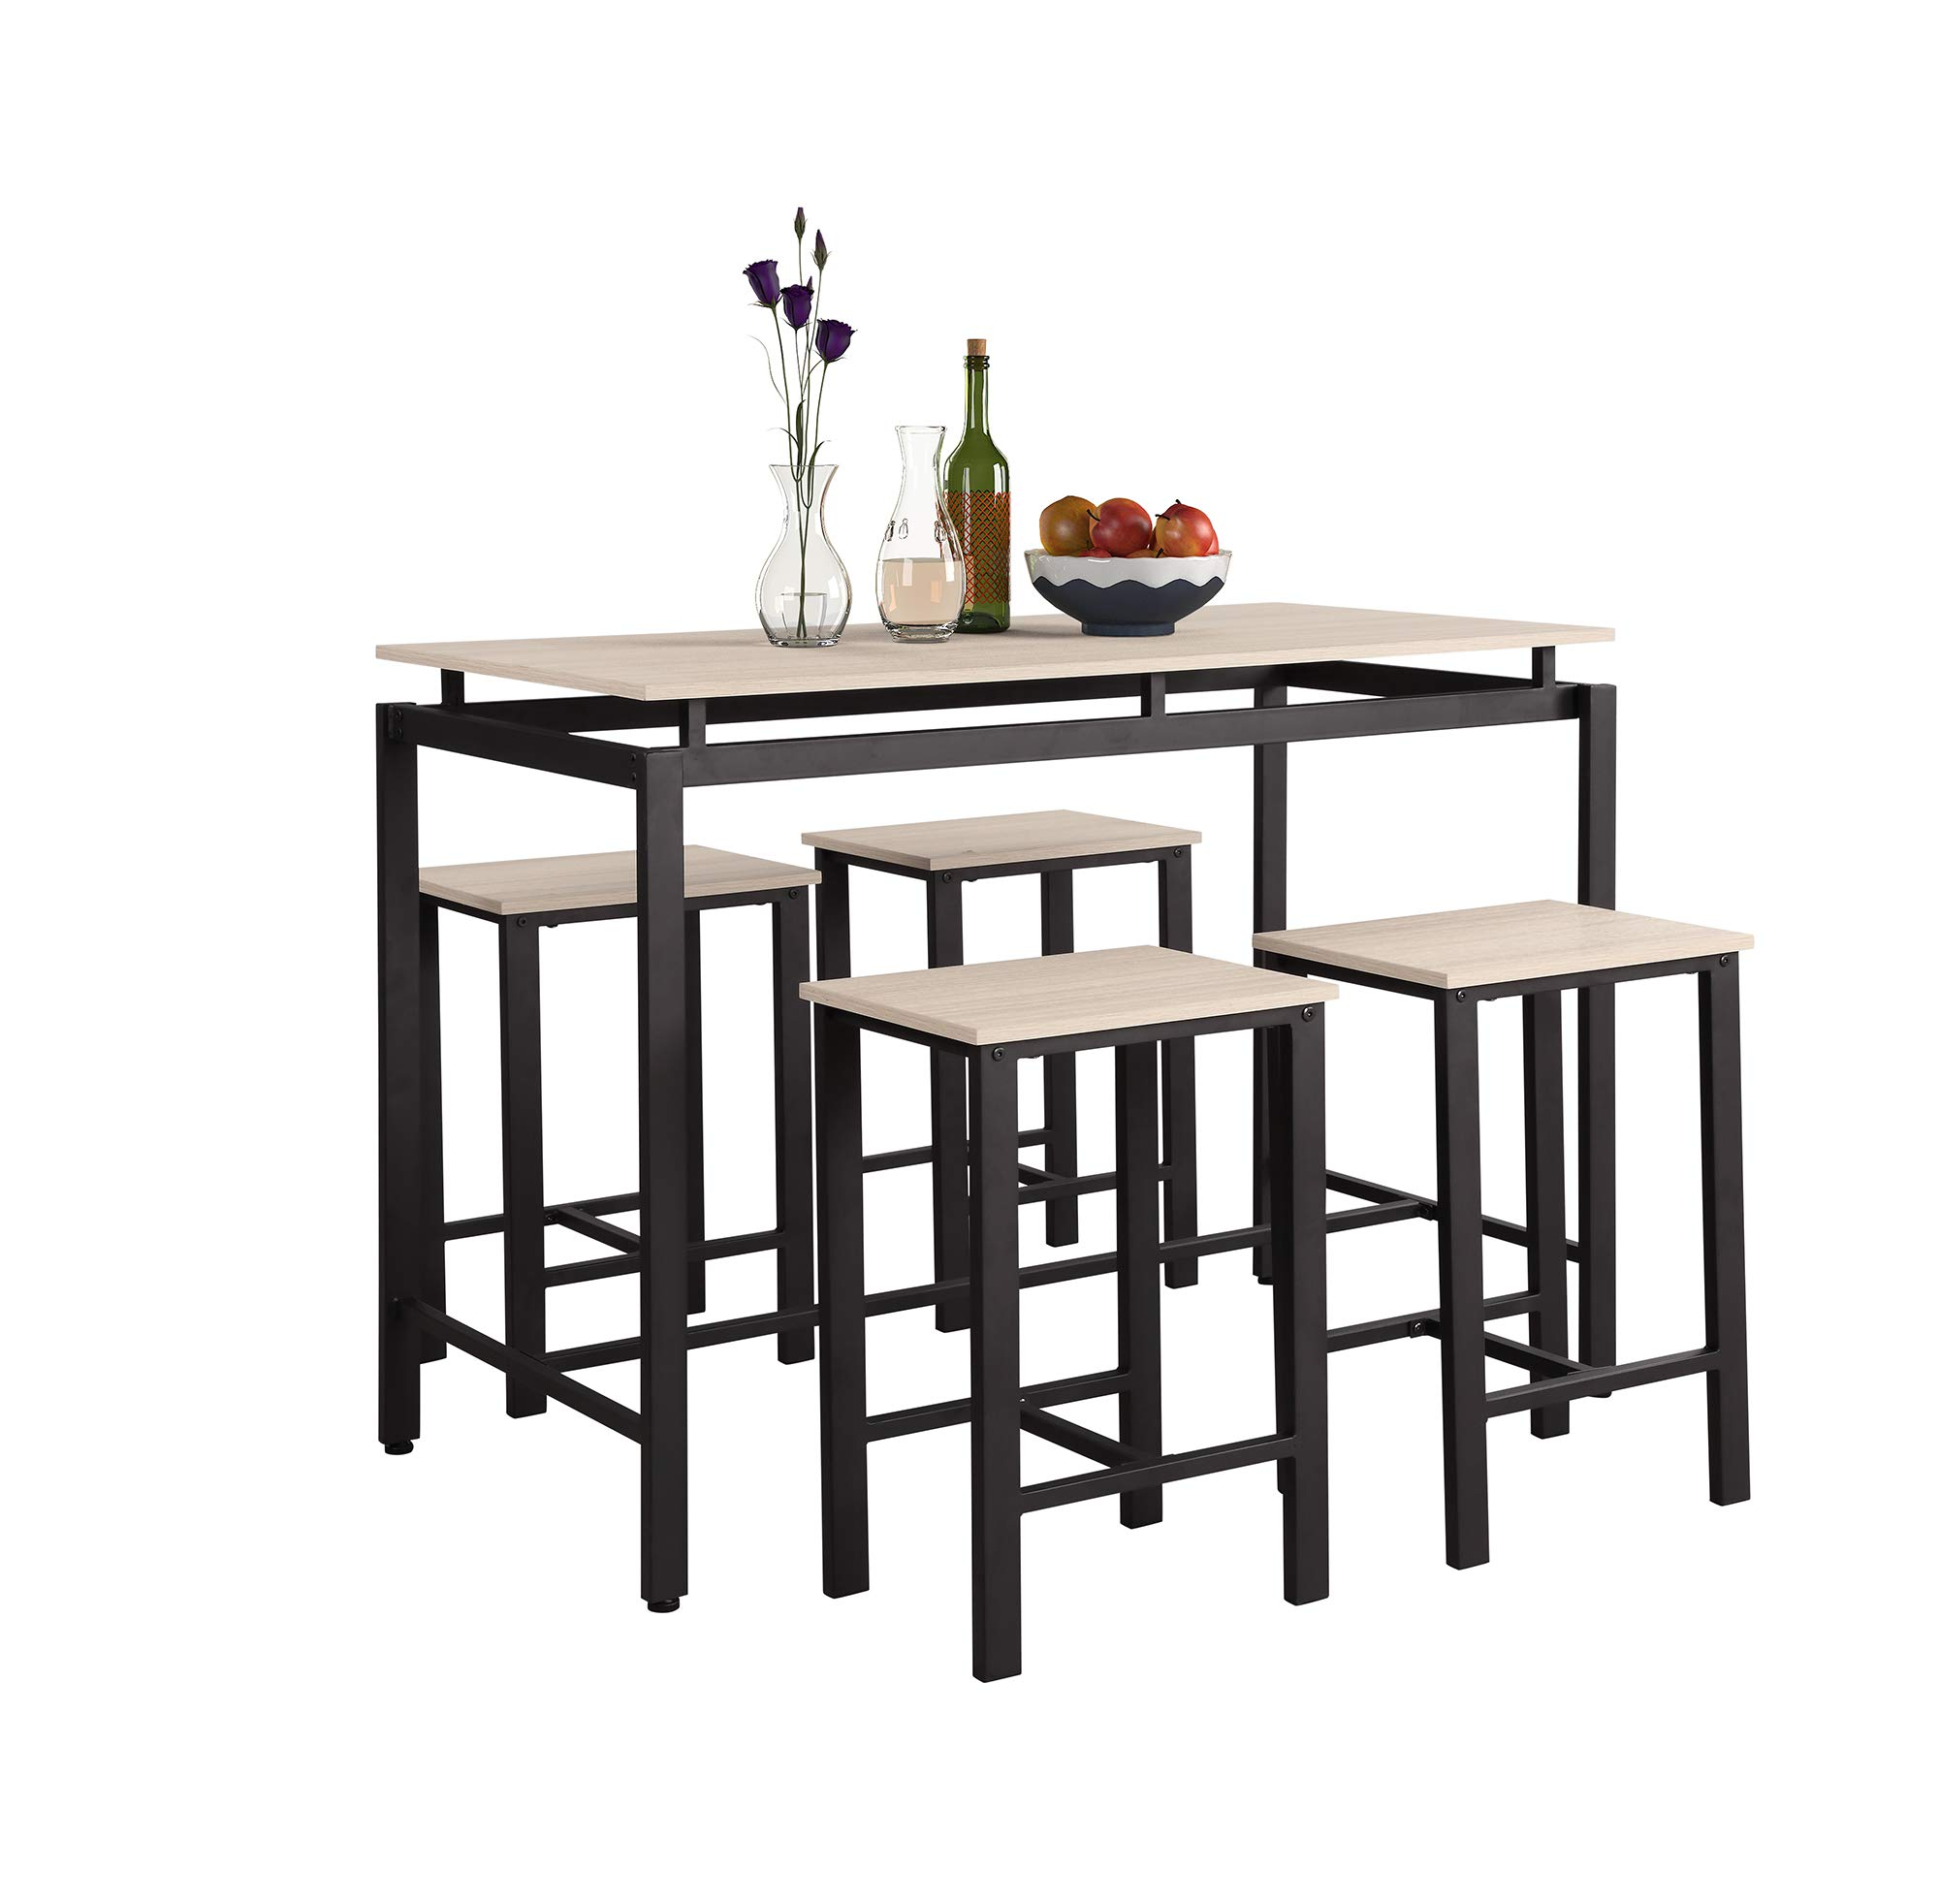 LOKESI 5Pcs Dining Set Modern Style Wooden Kitchen Table and Chairs with Metal Legs (Beige)